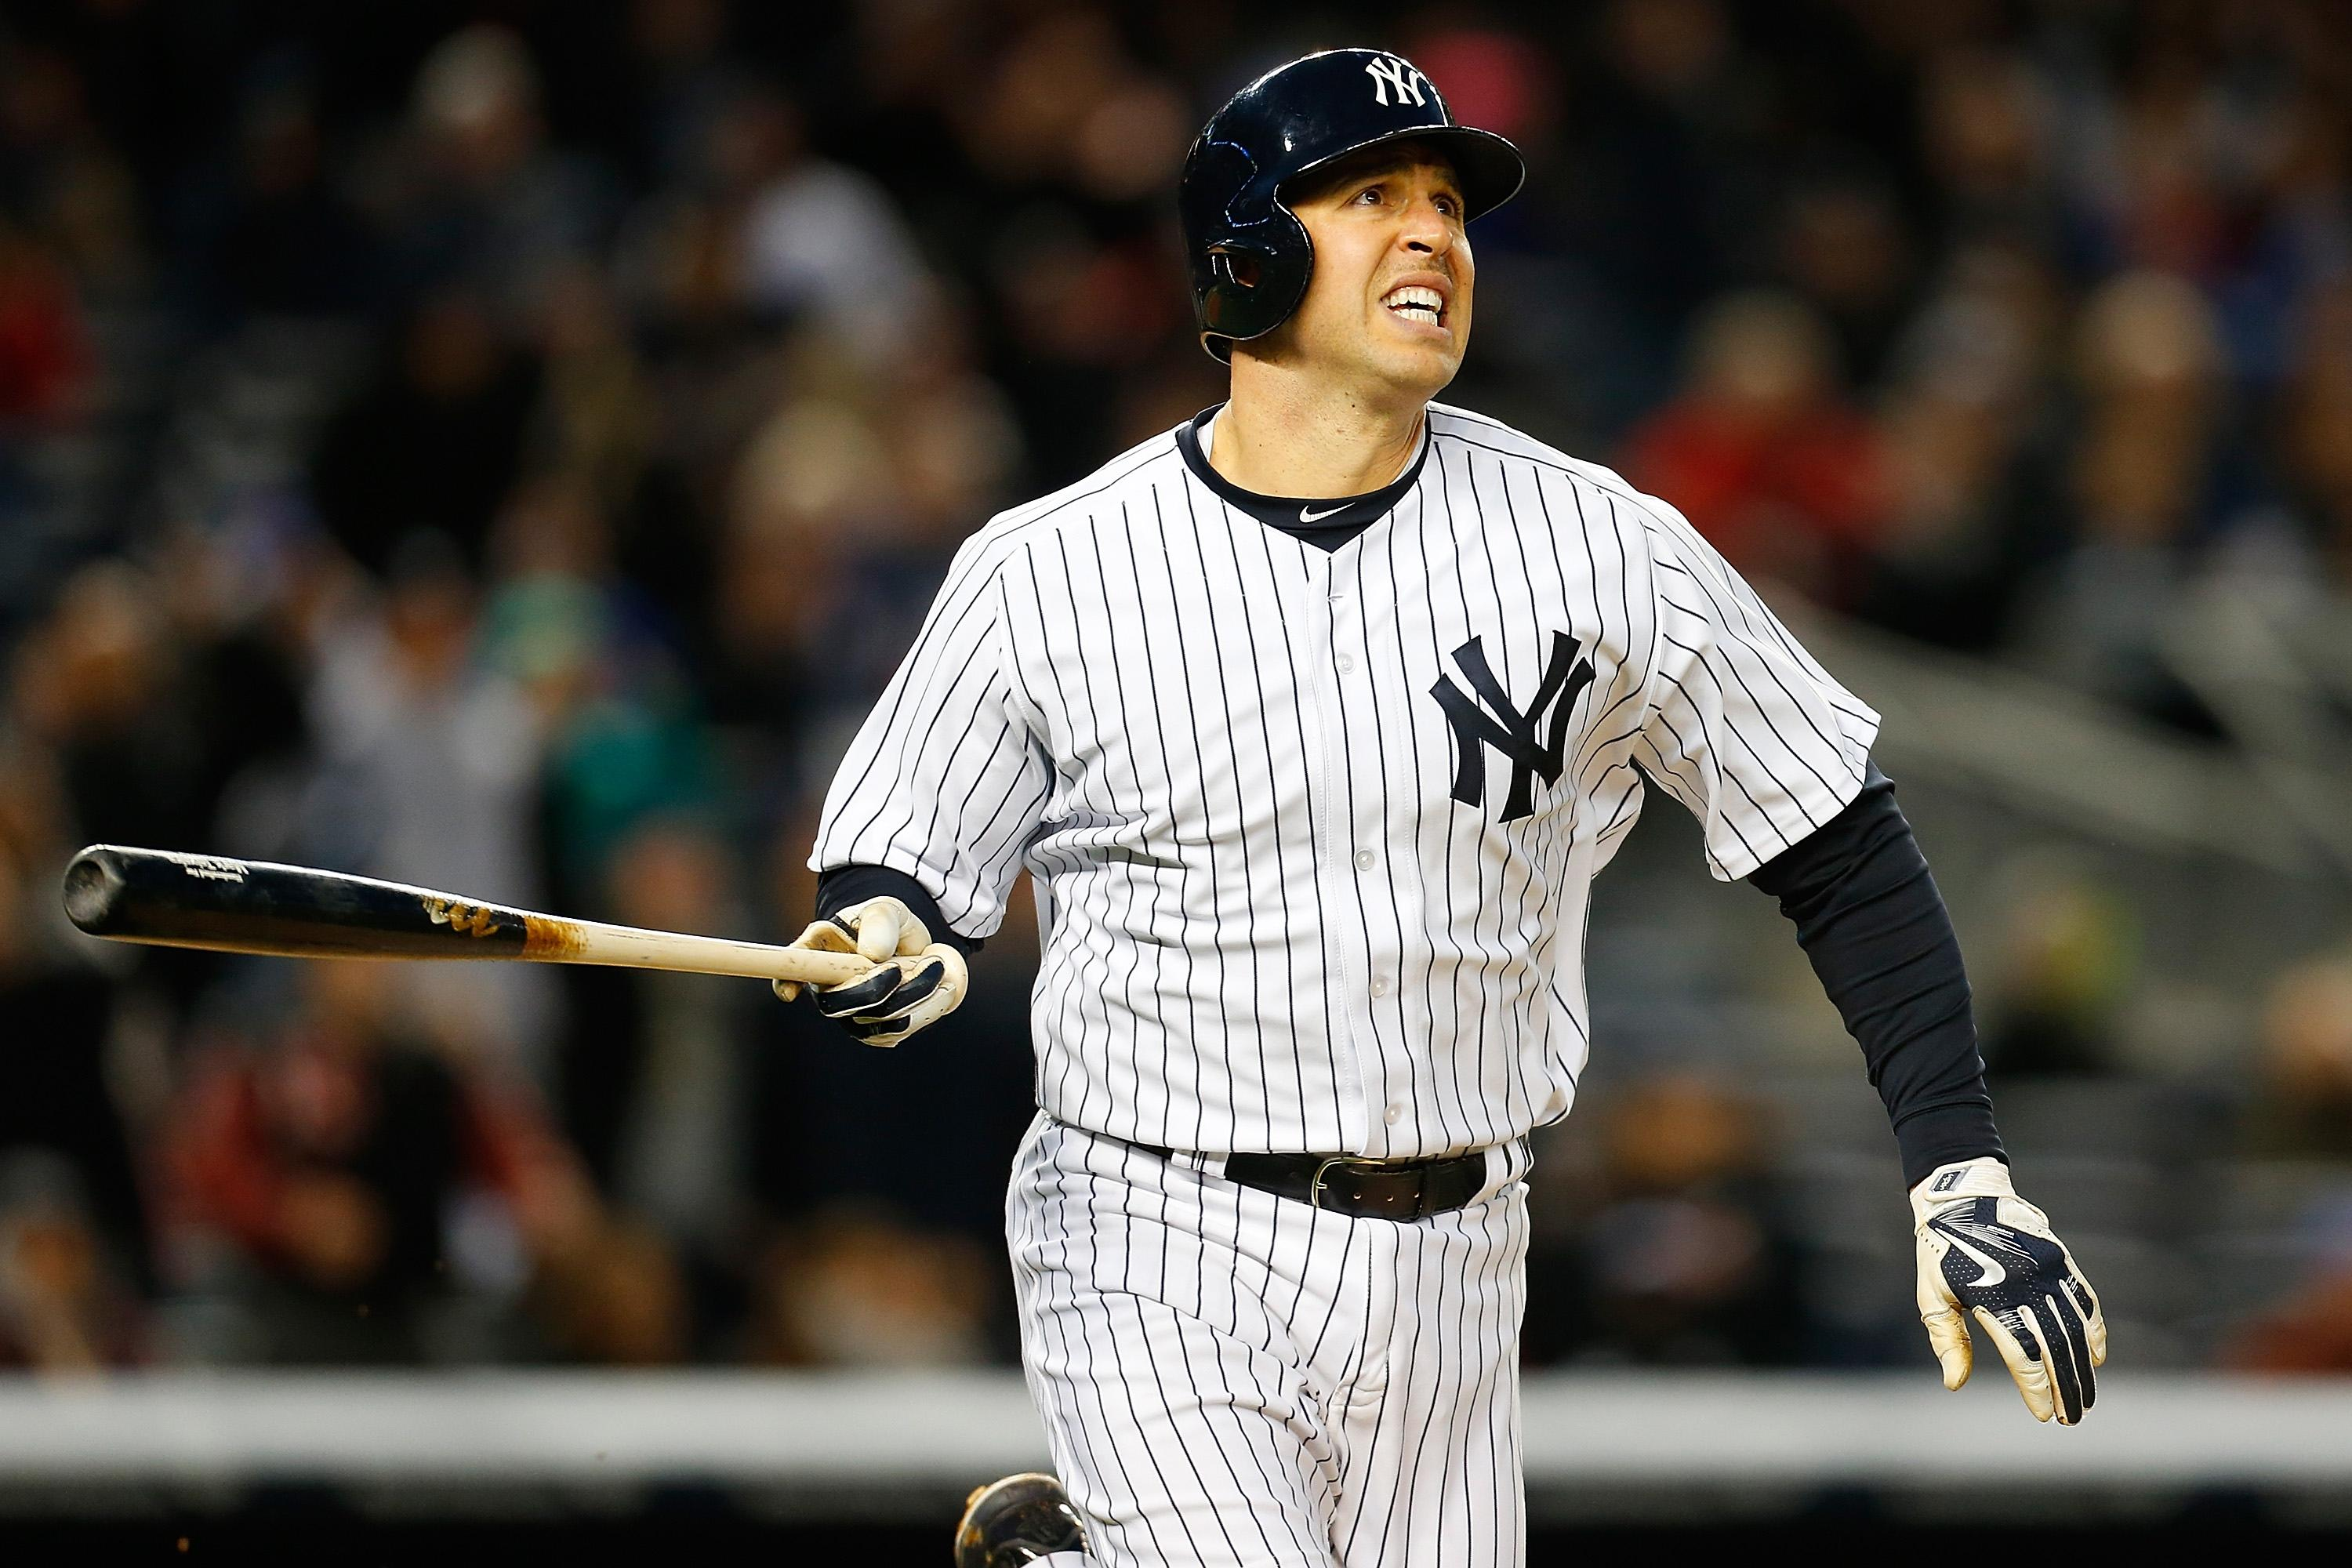 Mark Teixeira homers twice as Yankees snap Mets 11-game winning streak